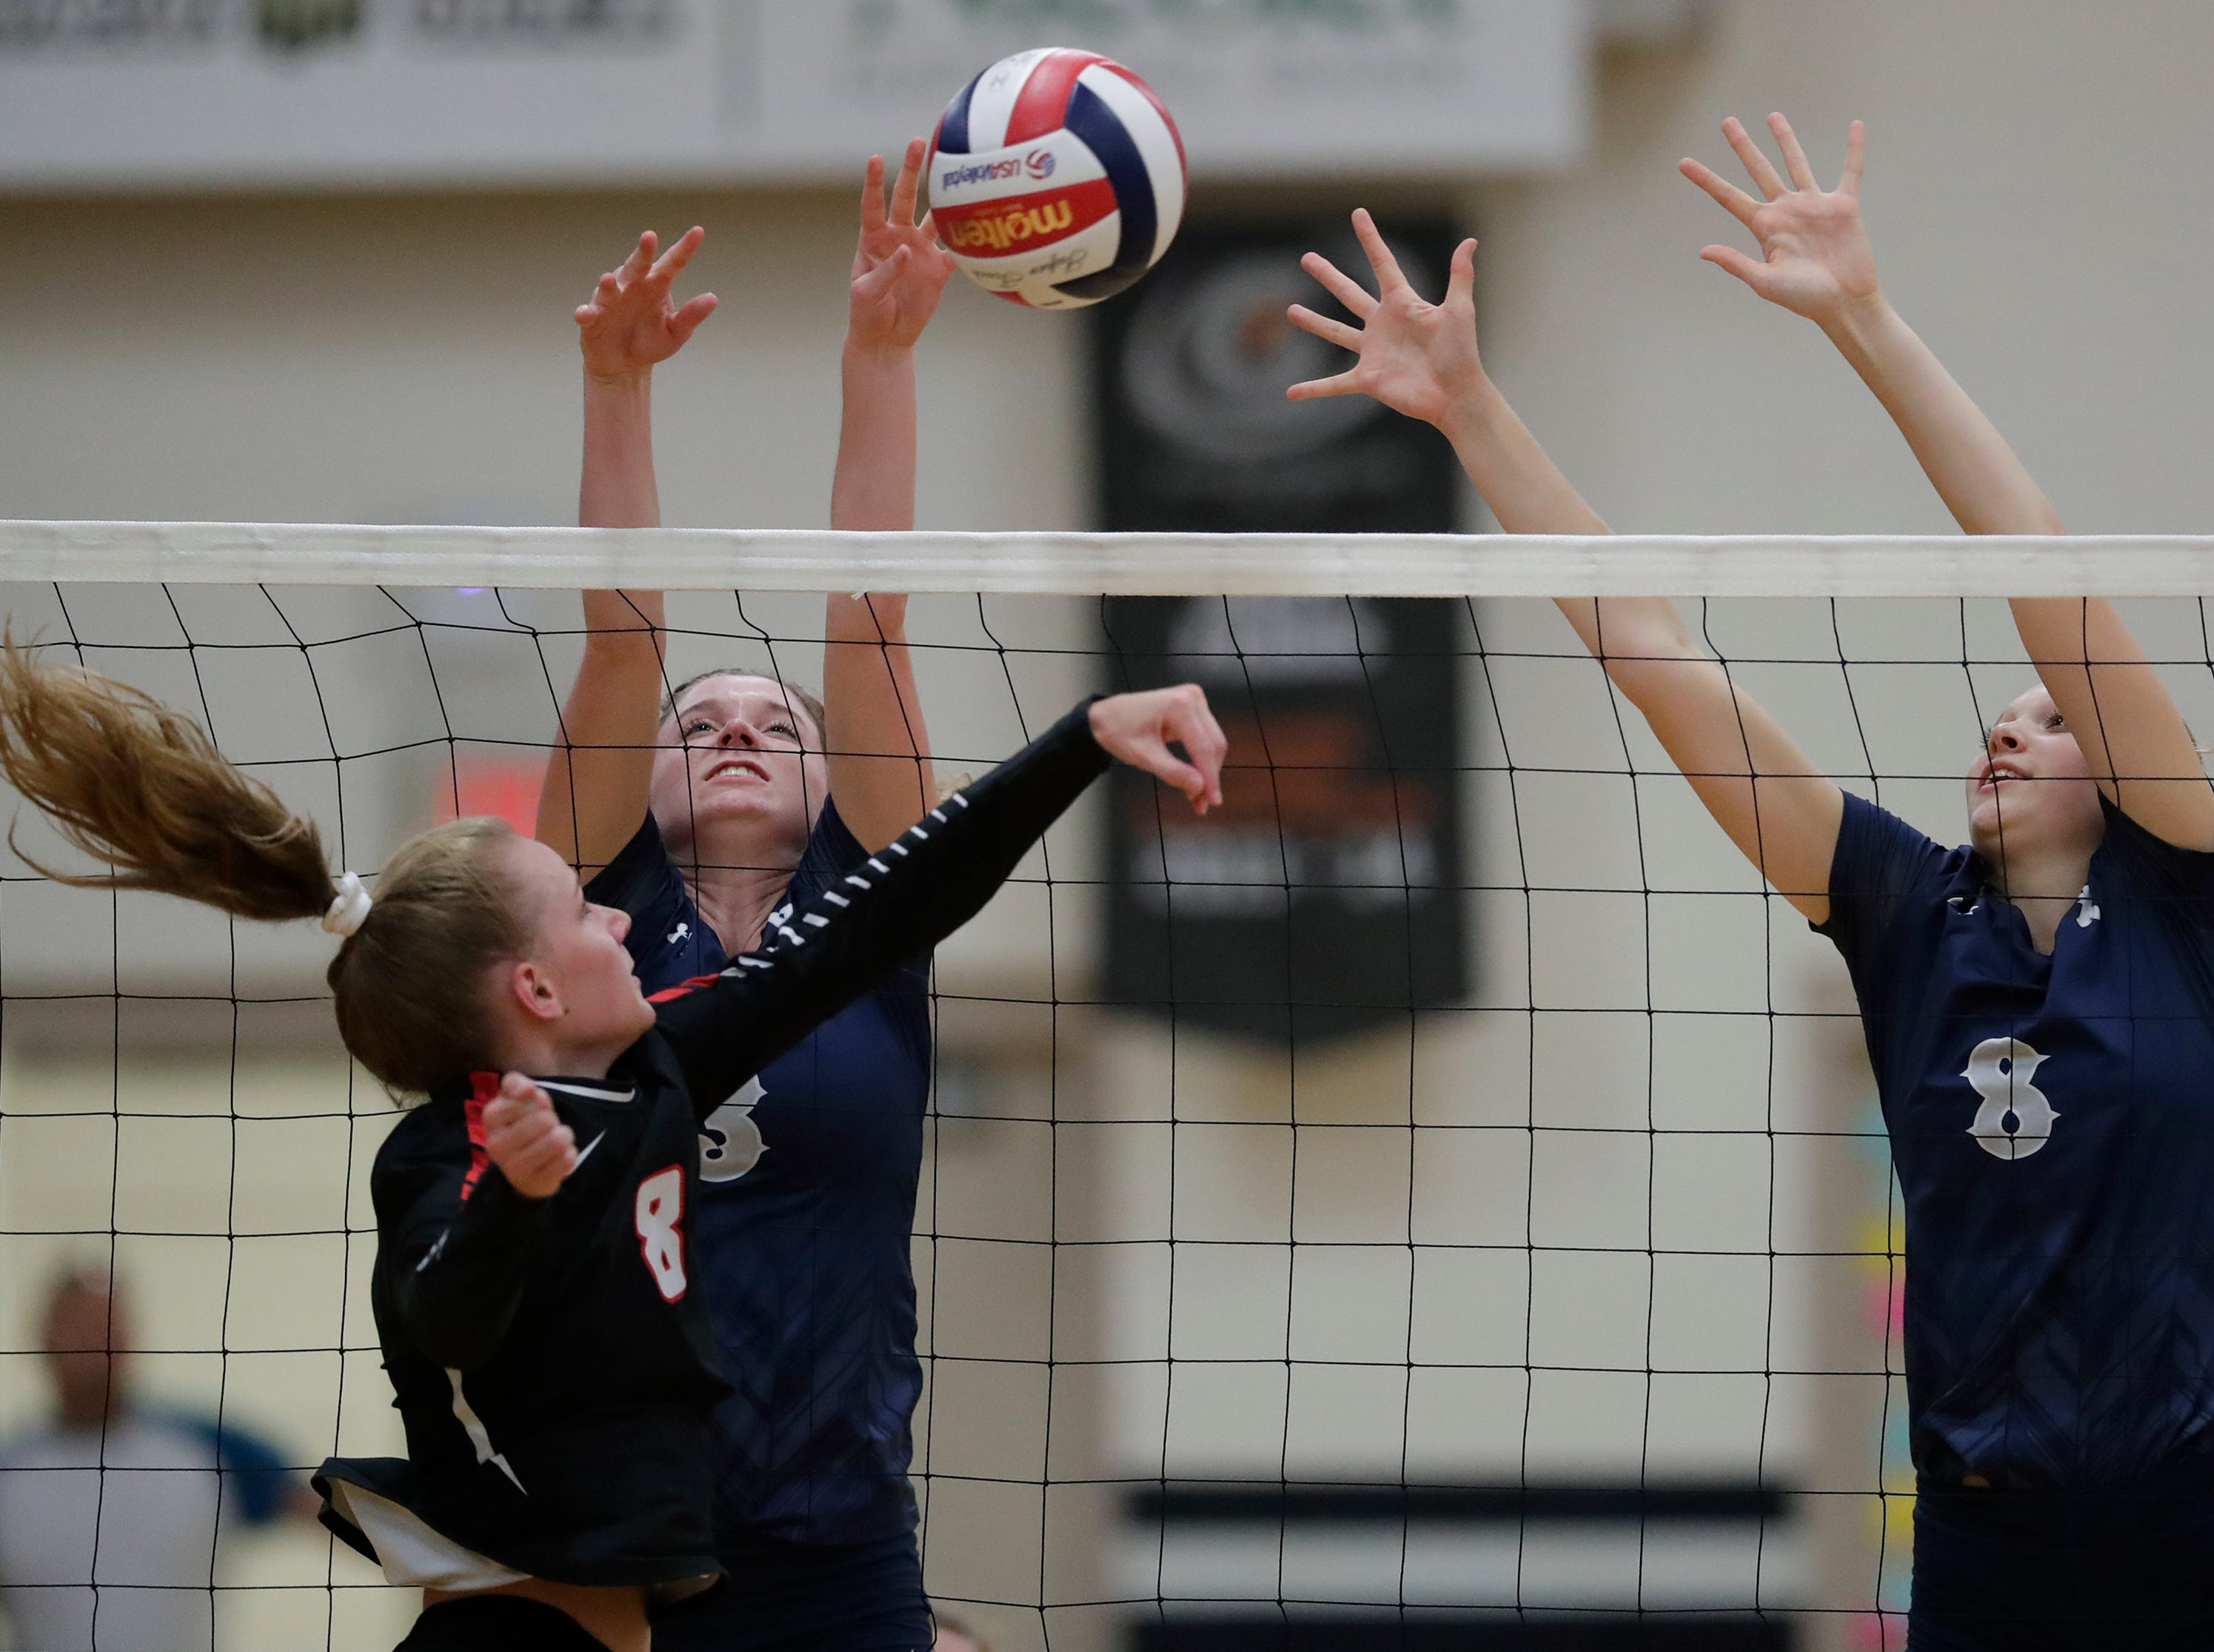 Xavier High School's Kaitlyn Tetzlaff (3) and Morgan Michalkiewicz (8) block against New London High School's Lauren Stroesenreuther (8) during their girls volleyball match Thursday, Sept. 13, 2018, in Appleton, Wis. 